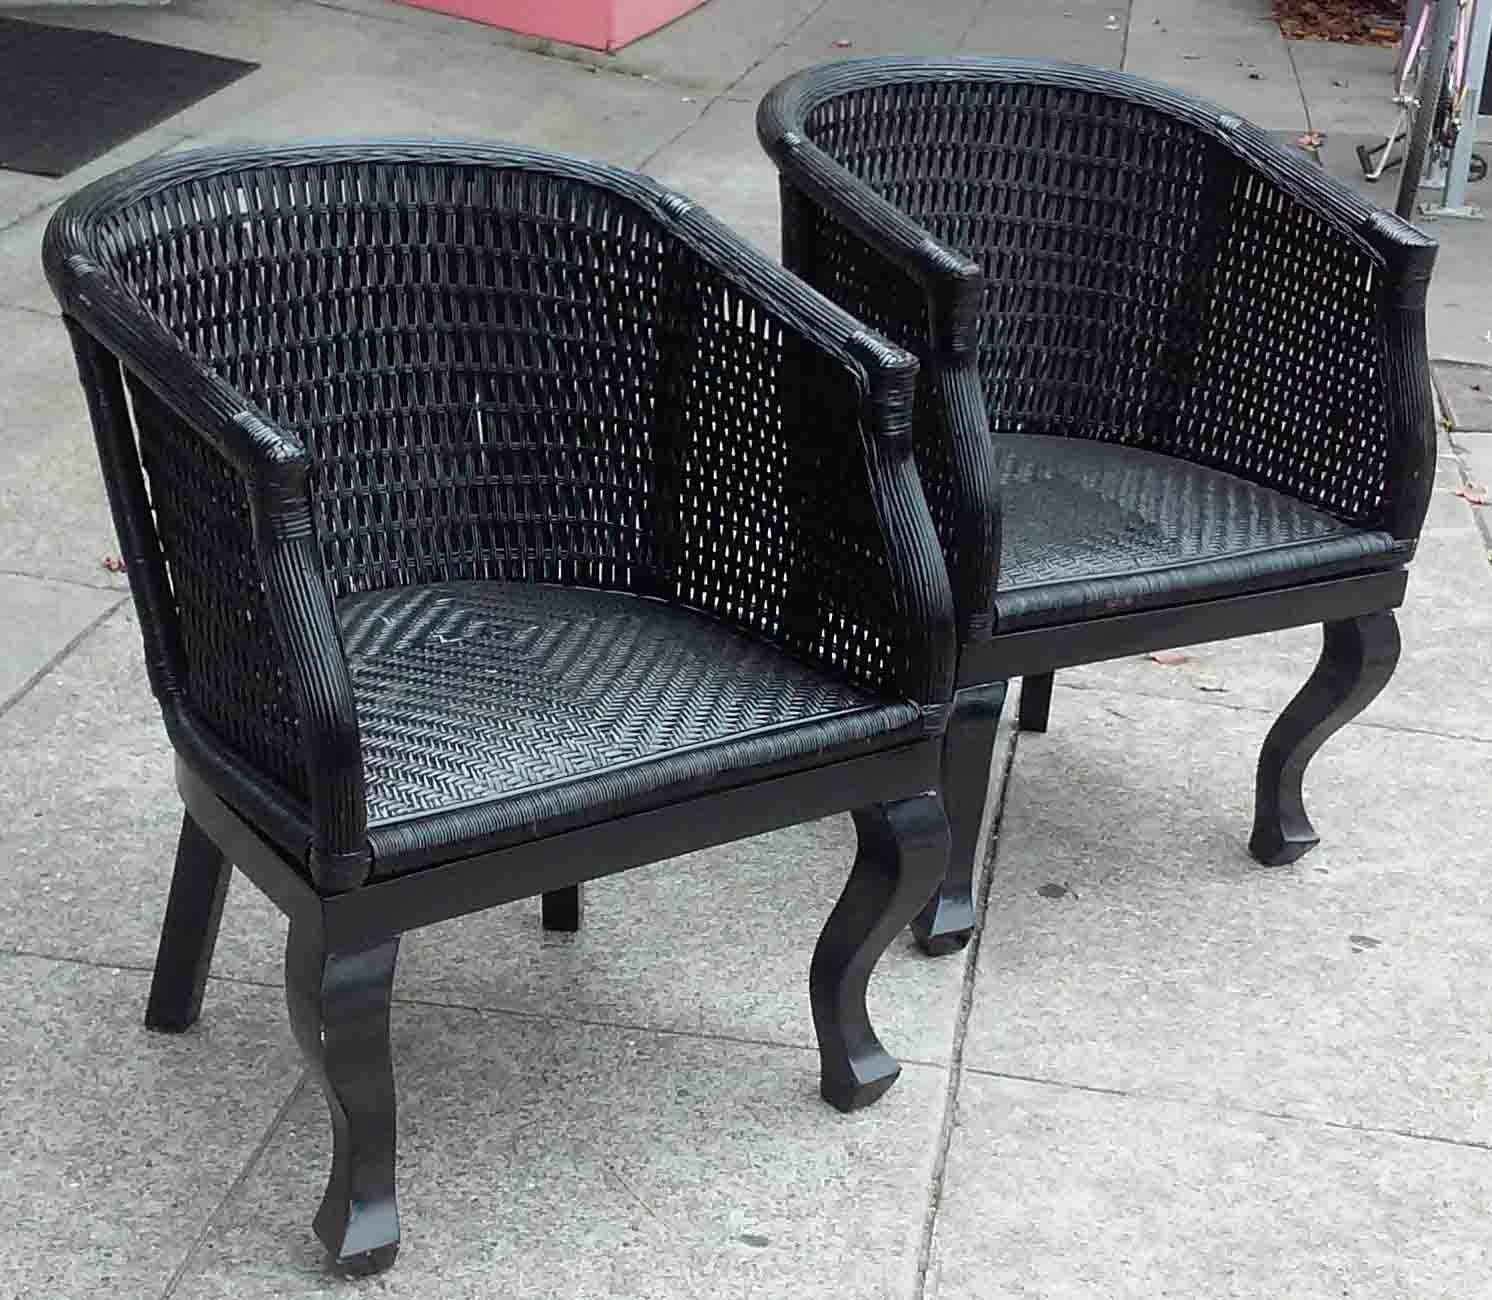 Uhuru Furniture Collectibles Sold Black Wicker Patio